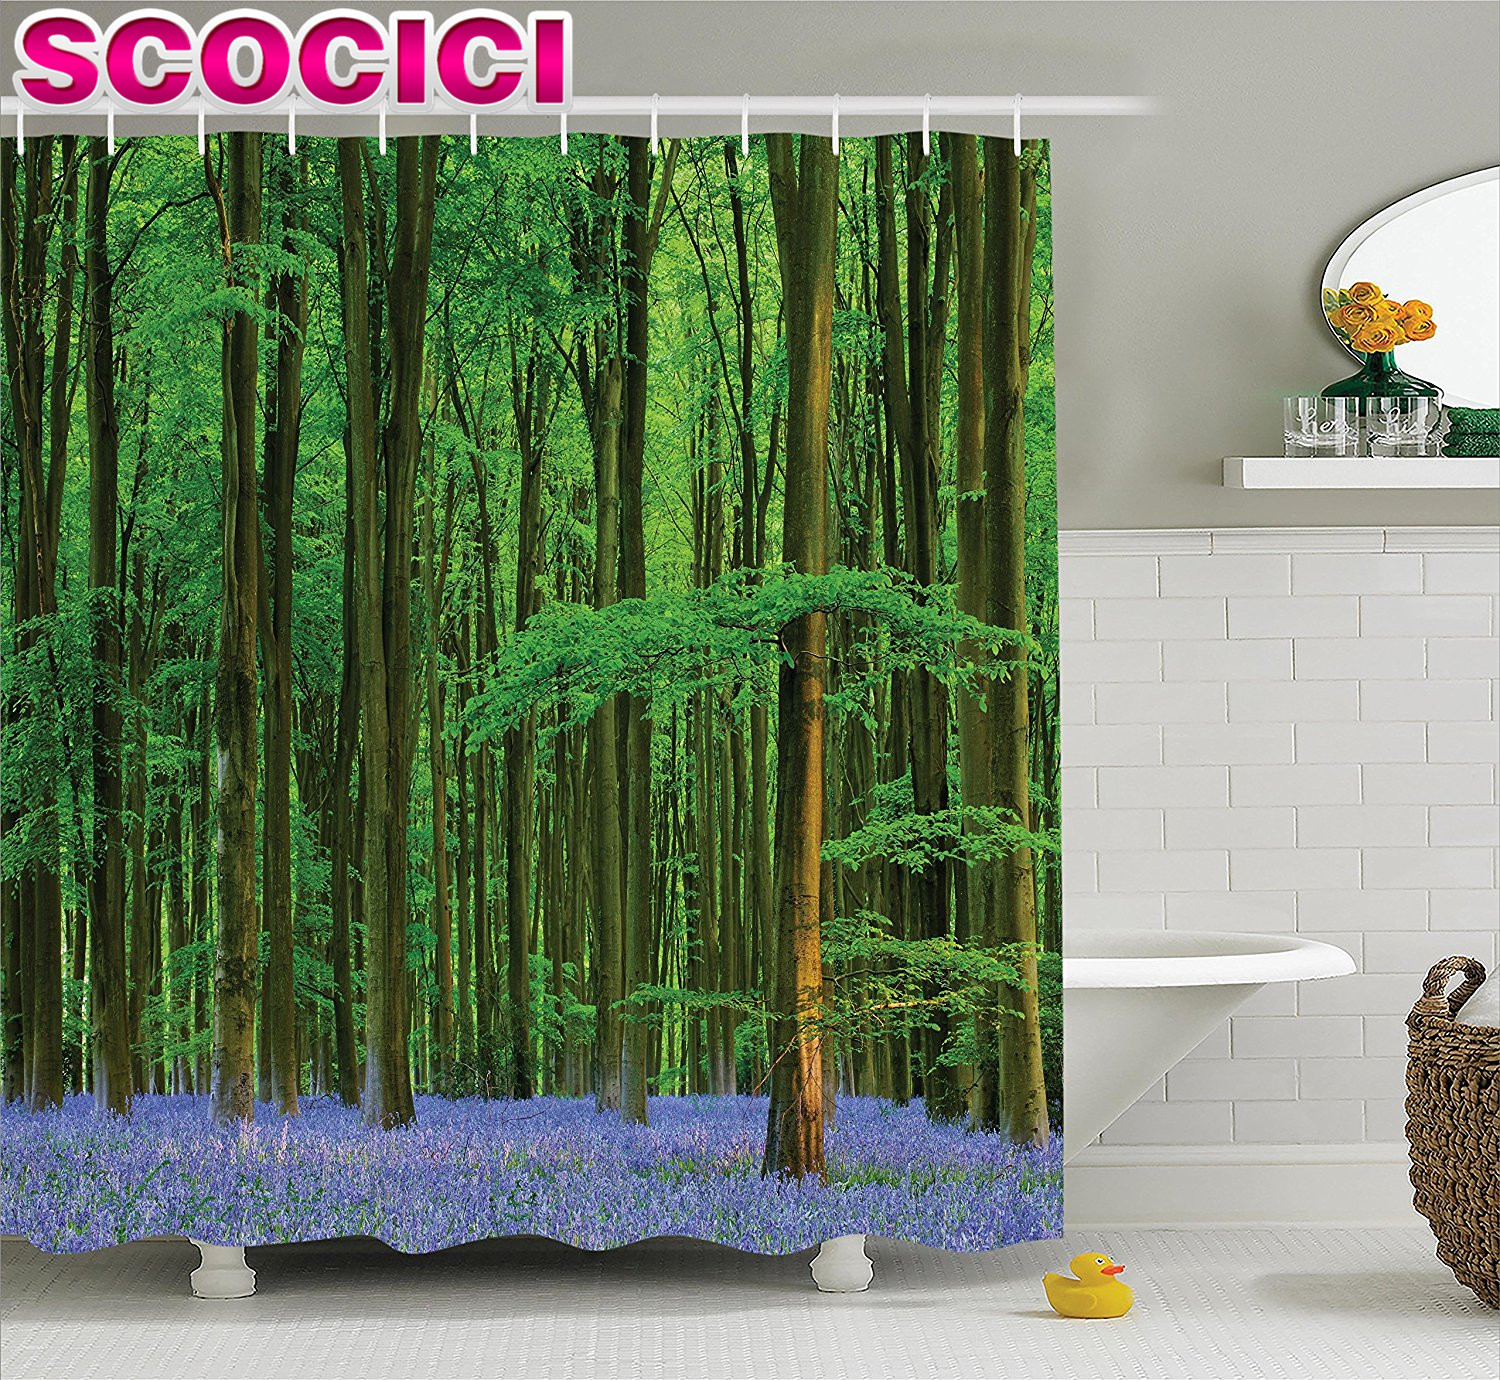 Woodland Decor Shower Curtain Set Spring Sunshine In A Bluebell Wood Summer Dream Holiday Getaway Destination